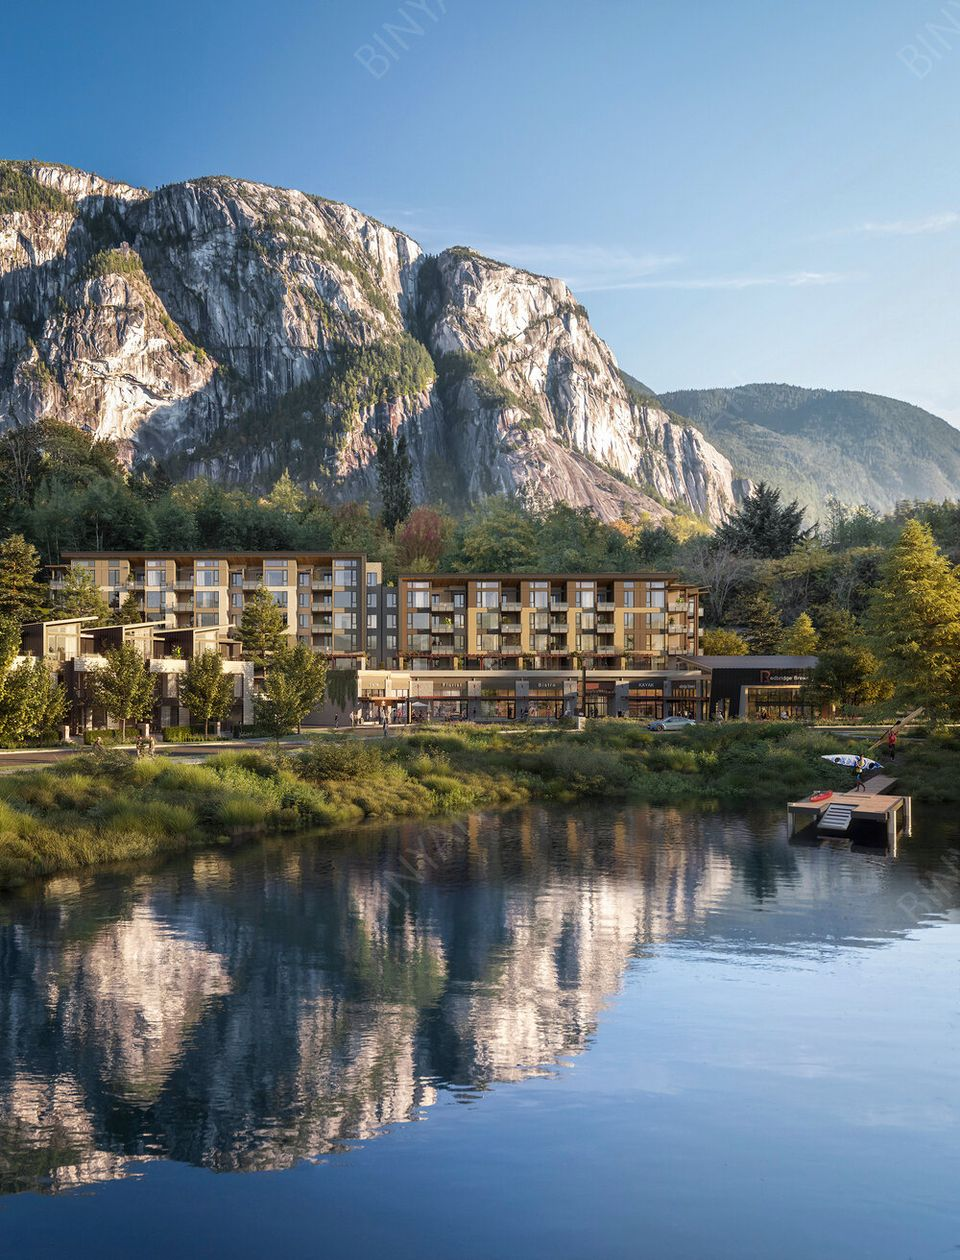 redbridge-image at Redbridge (1500 Scott Crescent, Squamish)